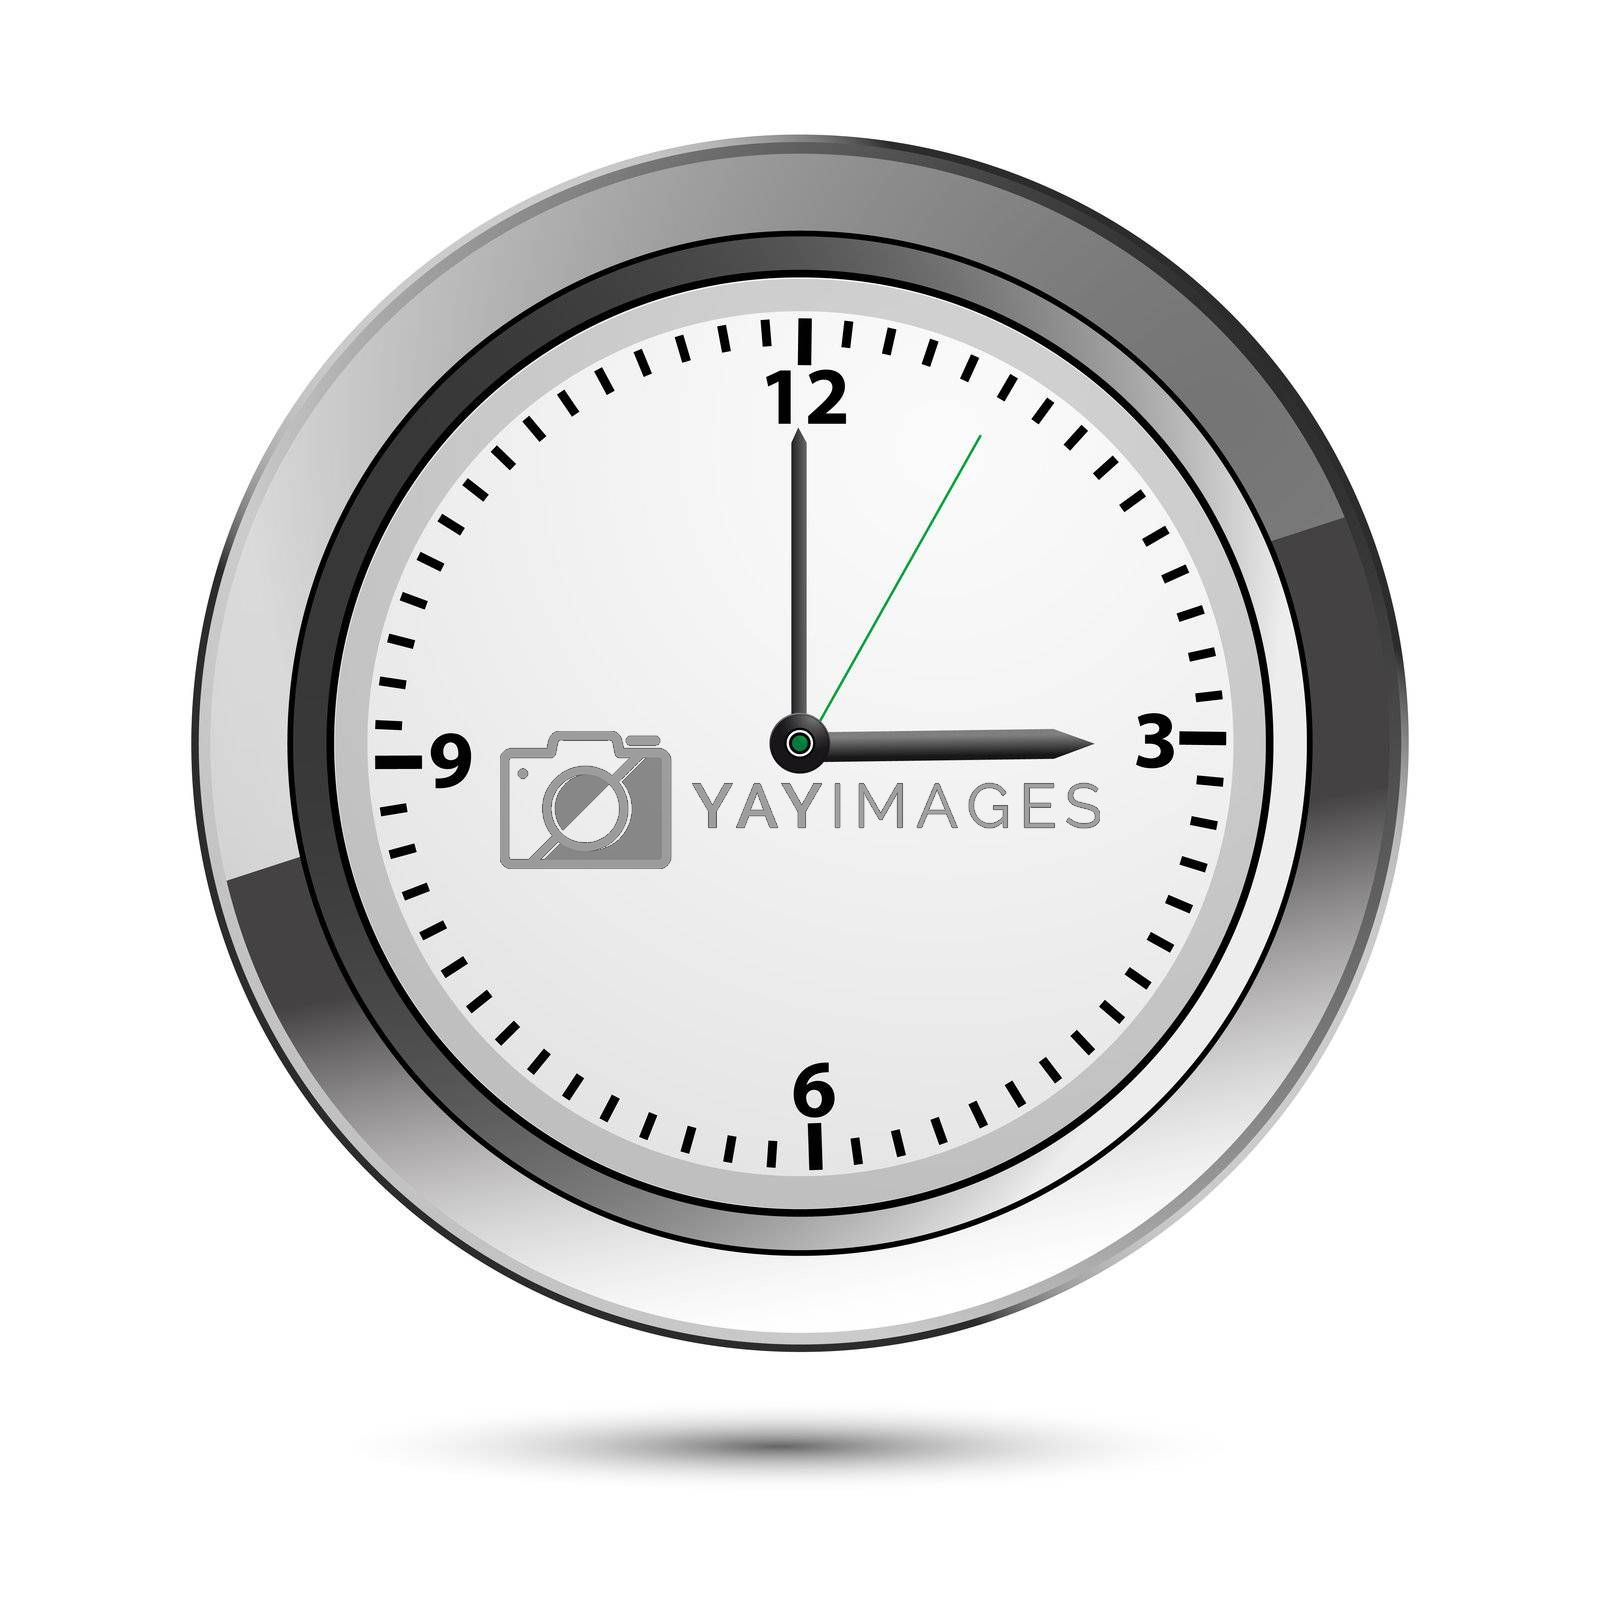 Royalty free image of classic watch by get4net